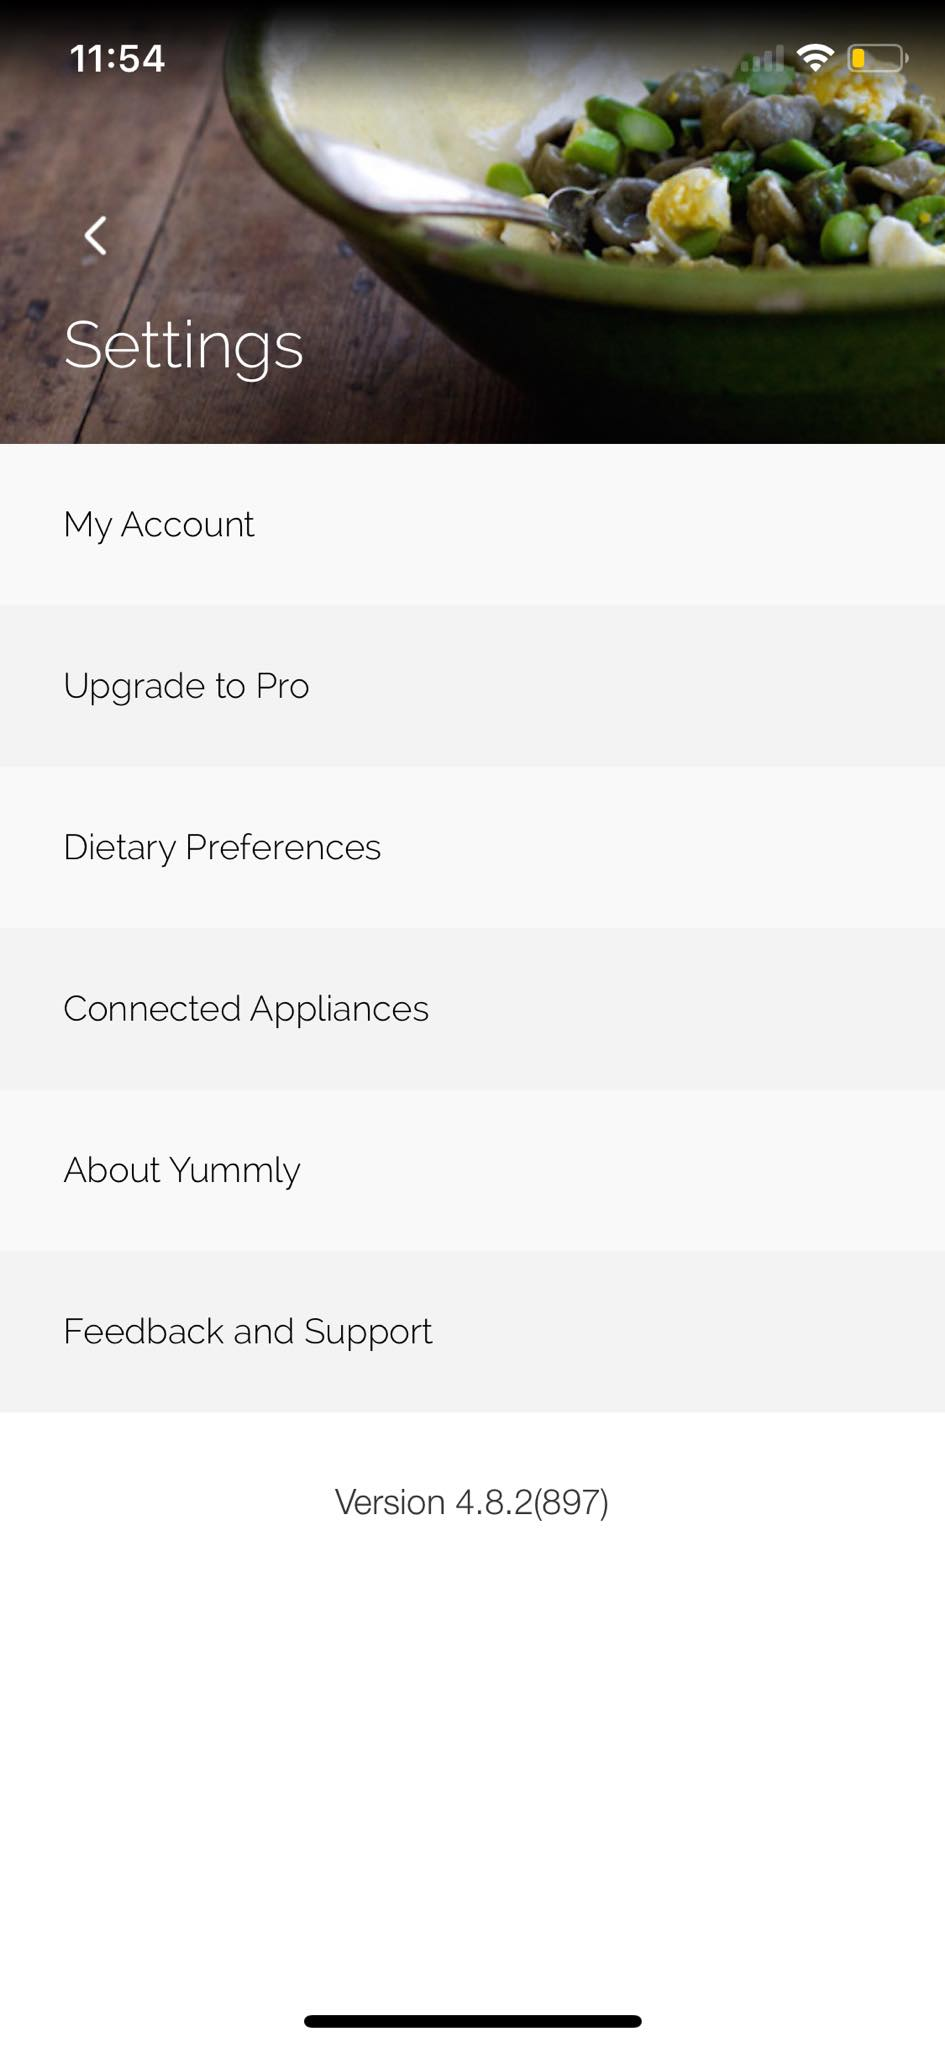 Settings on iOS by Yummly from UIGarage